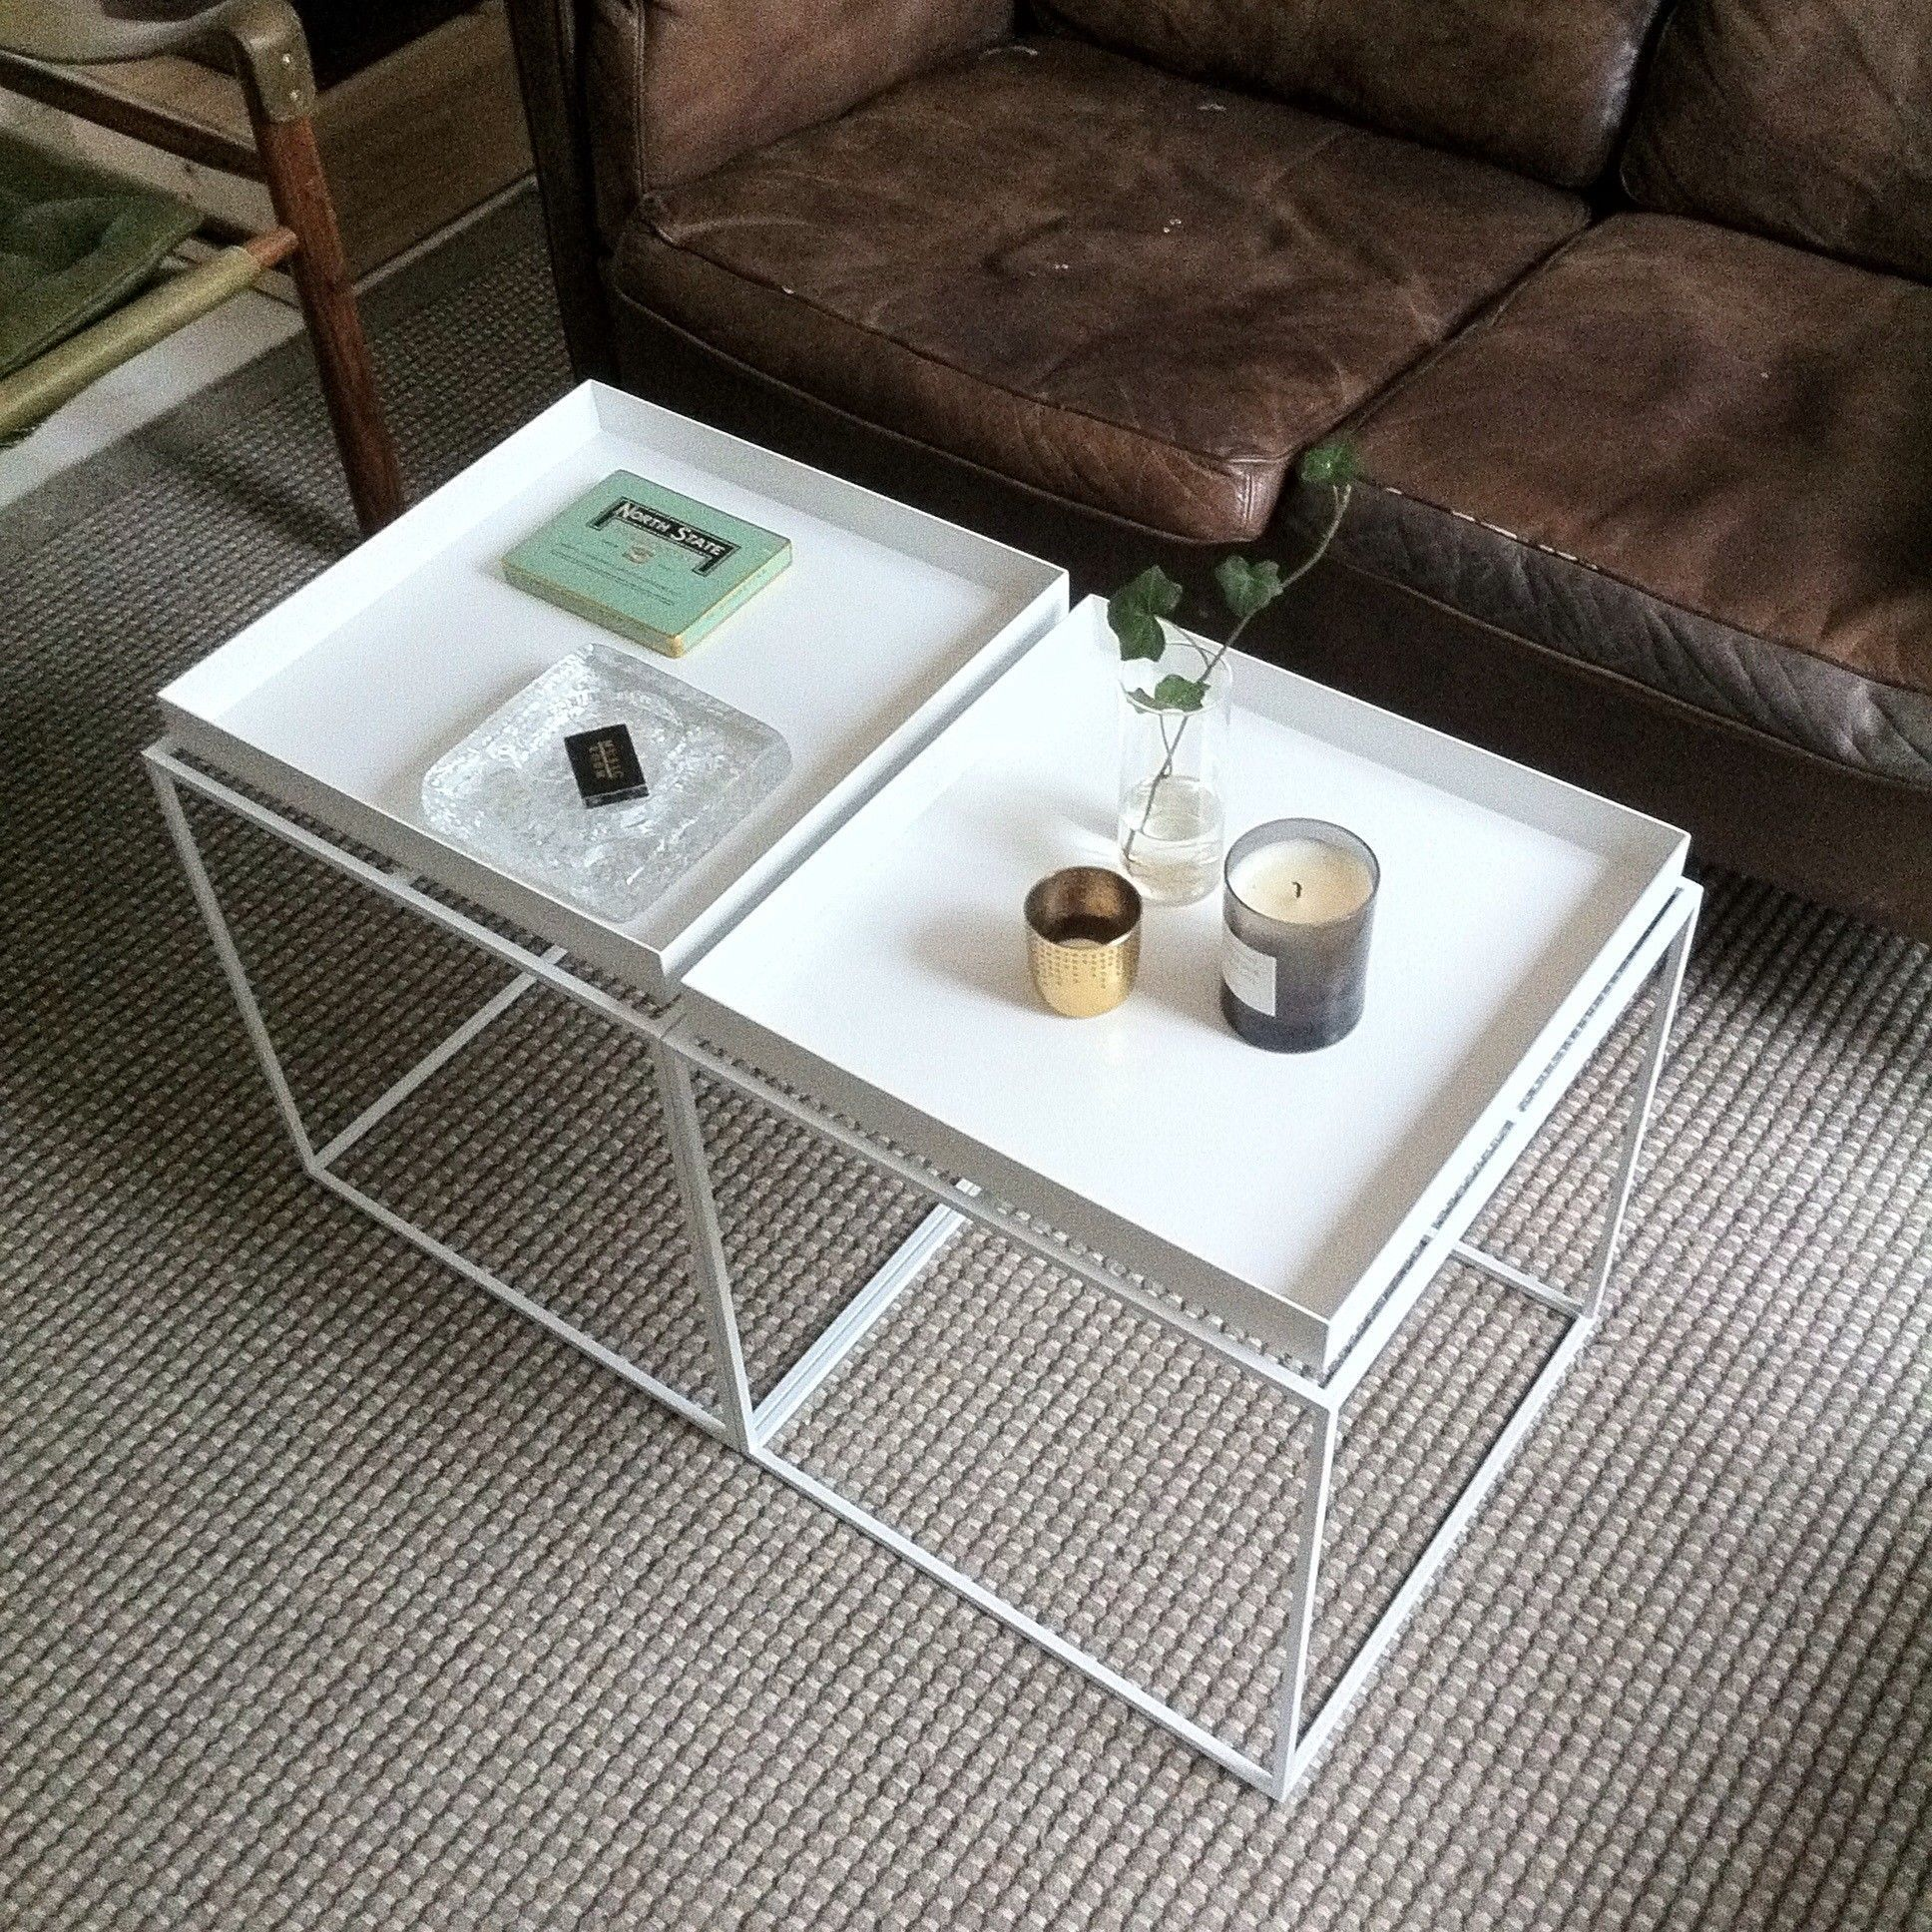 Two Small Coffee Tables Pushed Together Gives The Living Room Set Up An Added Level Of Flexibility